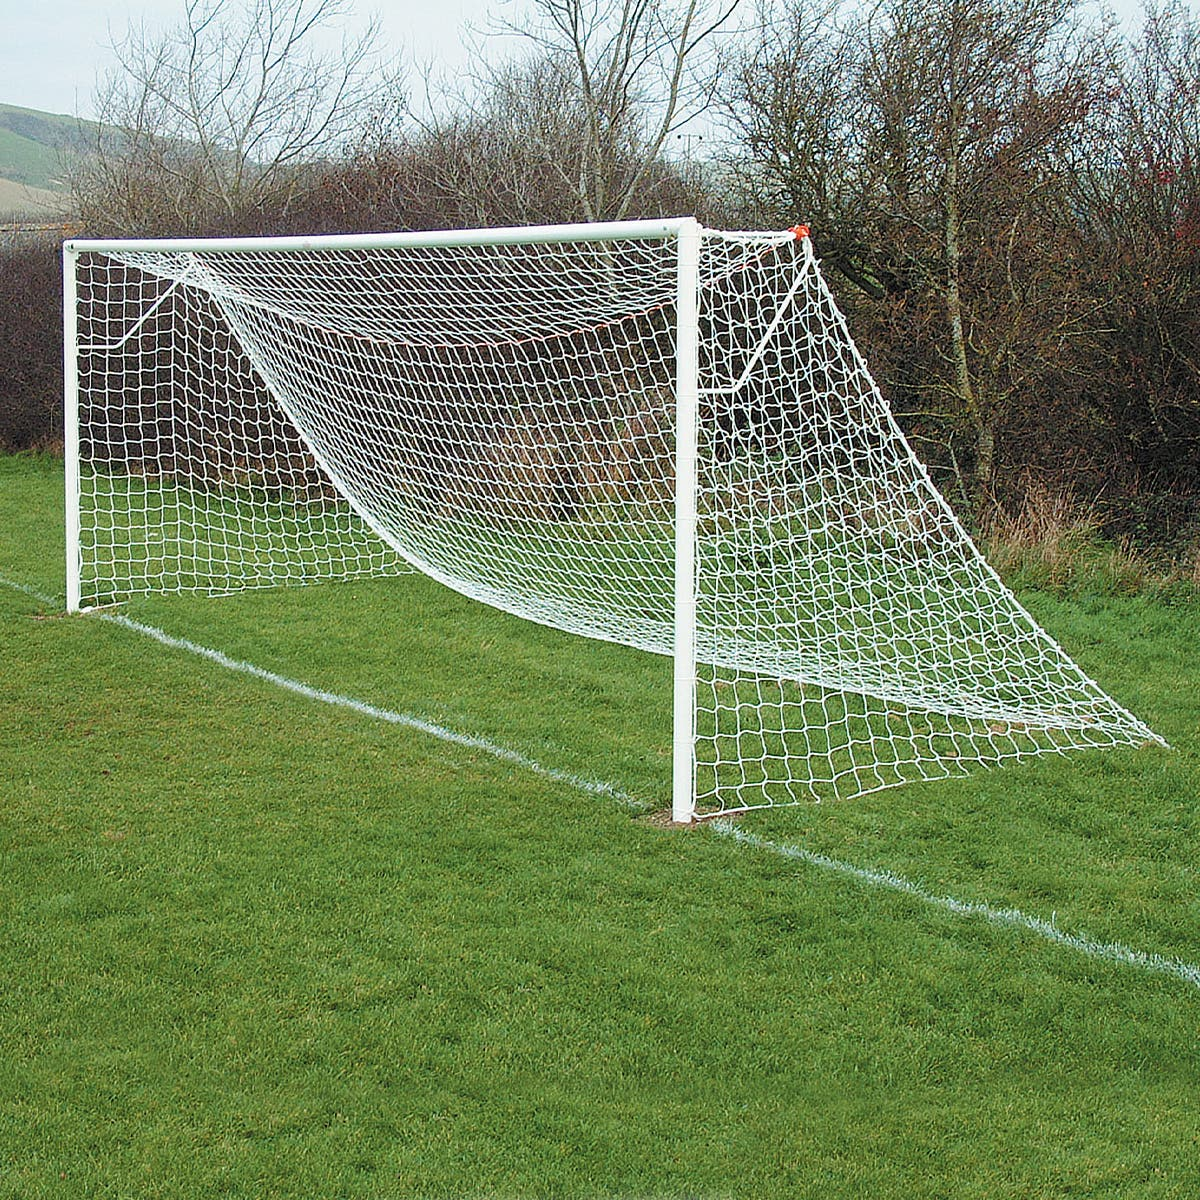 Image for Socketed Steel Football Goal Posts - 21' x 7'